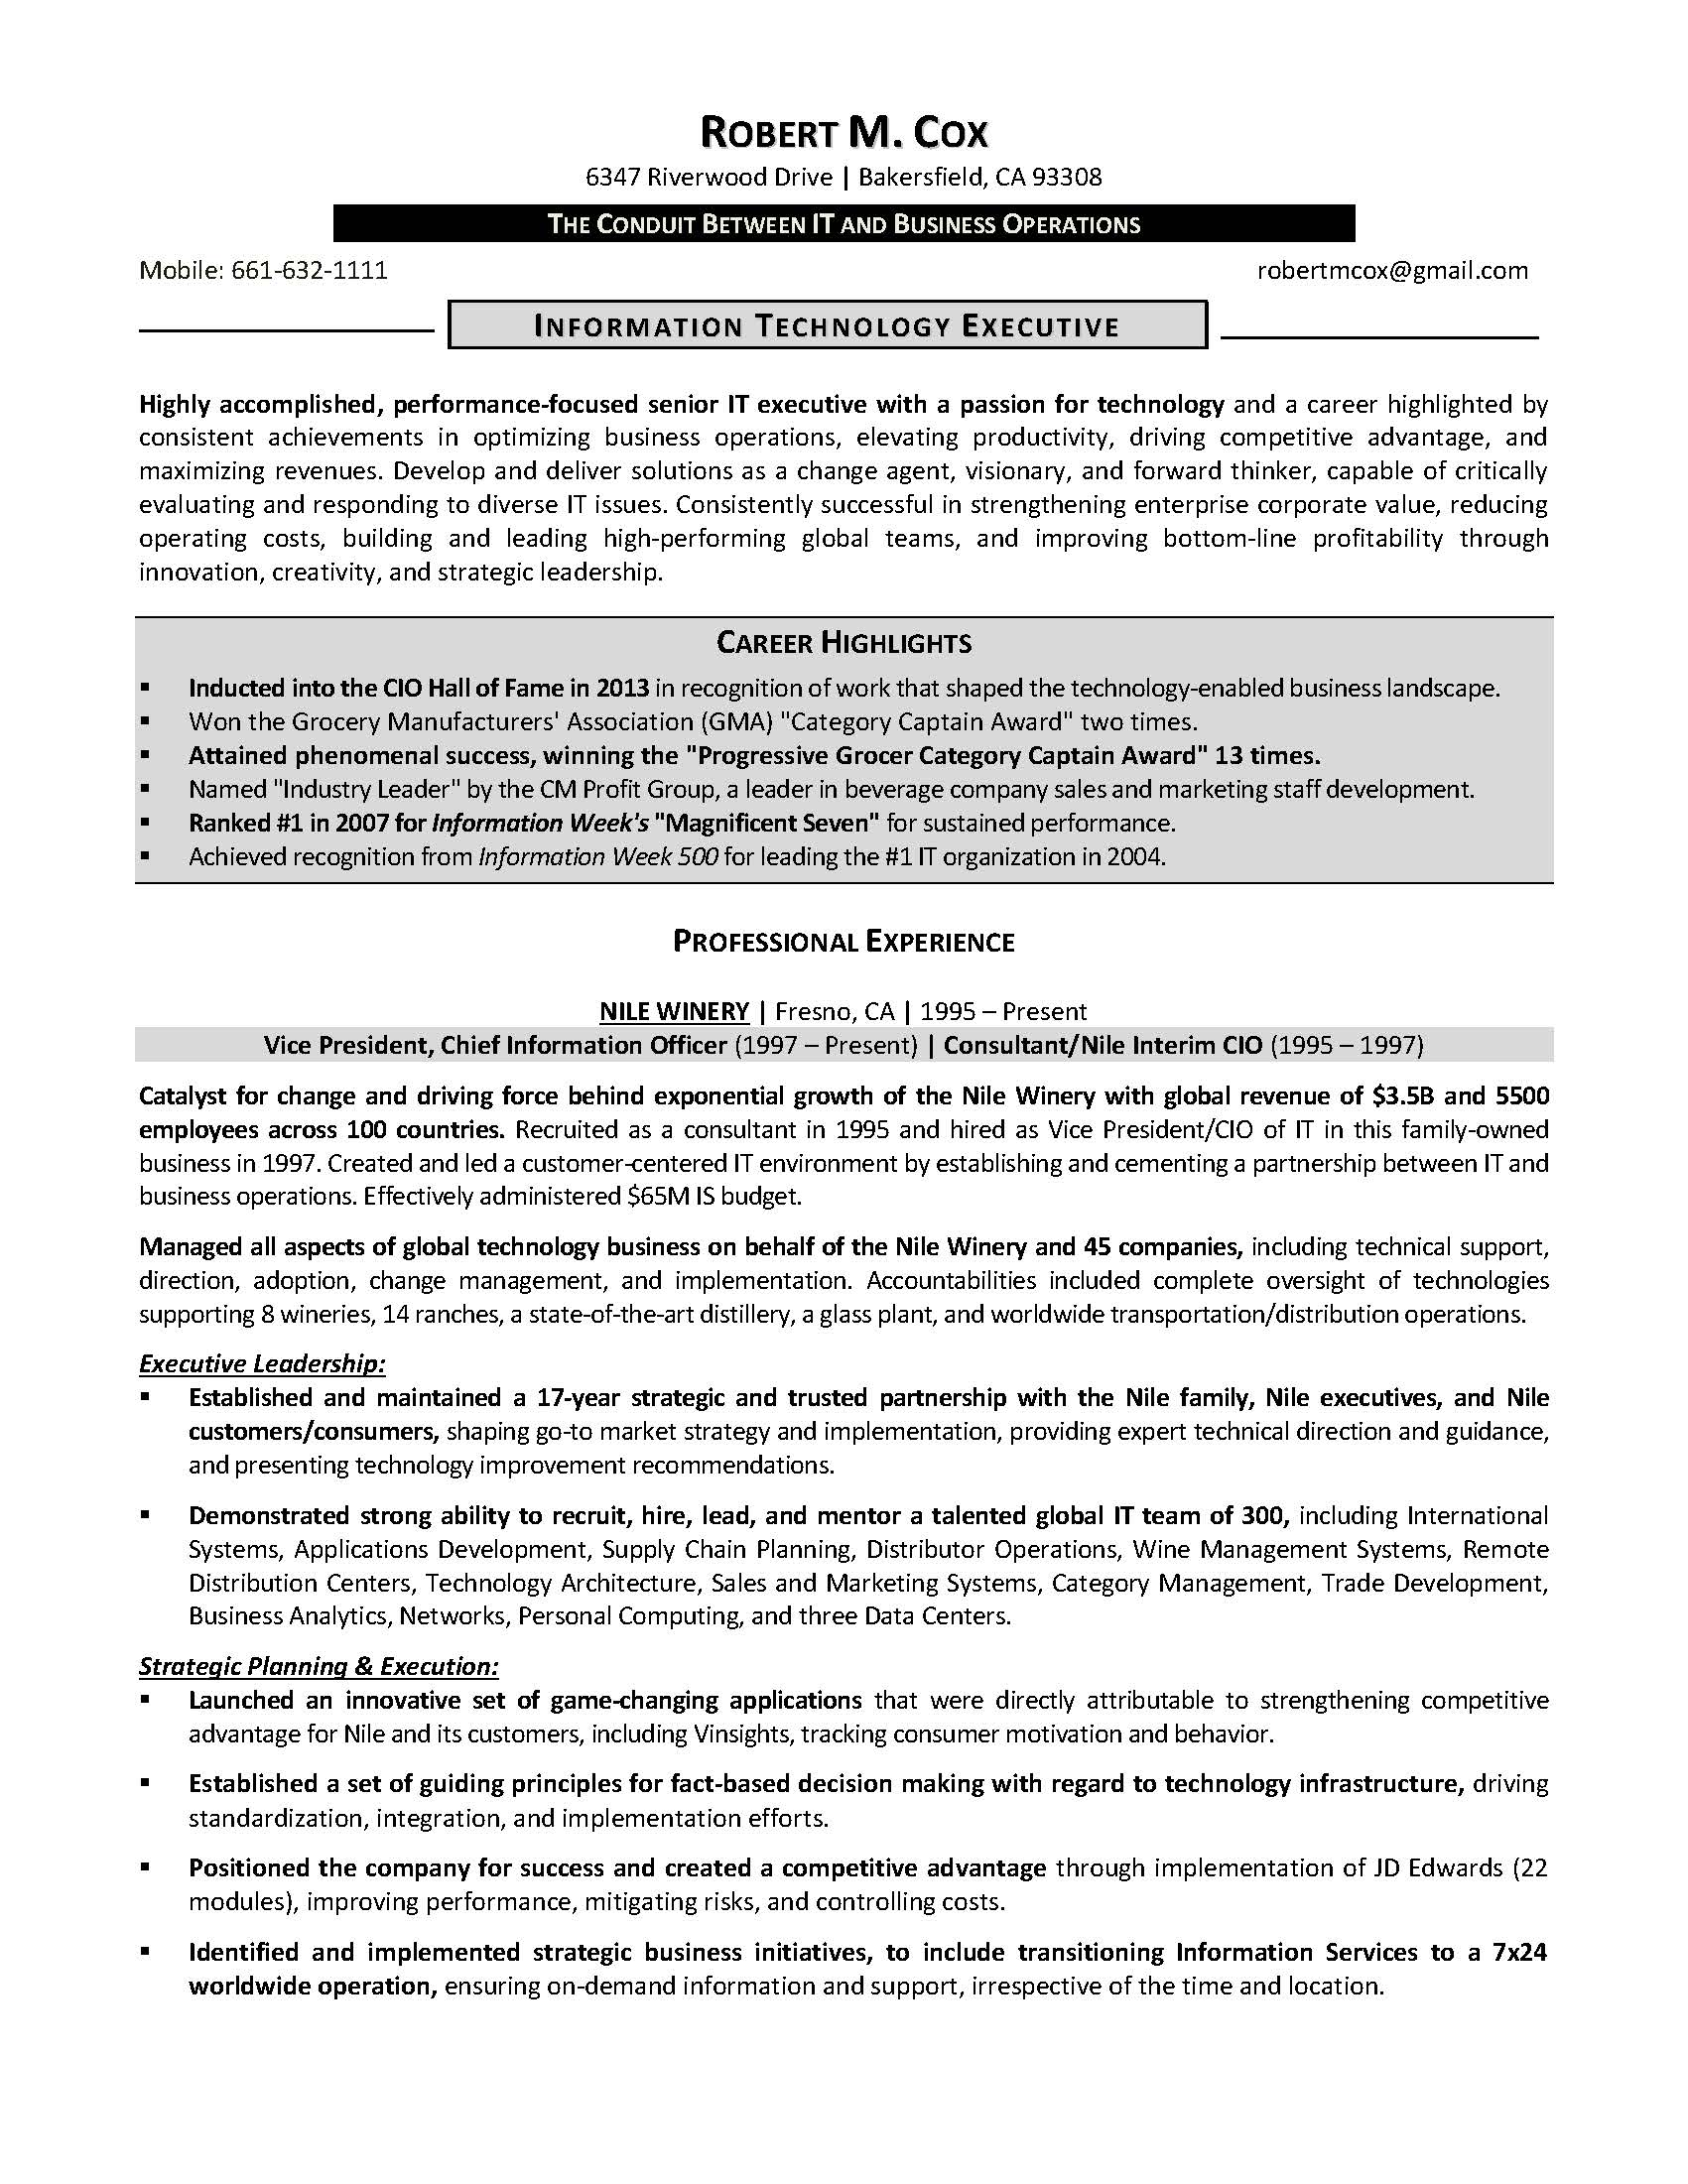 Resume Resume Template Technical Job it resume cv cover letter example software engineer technical sample it